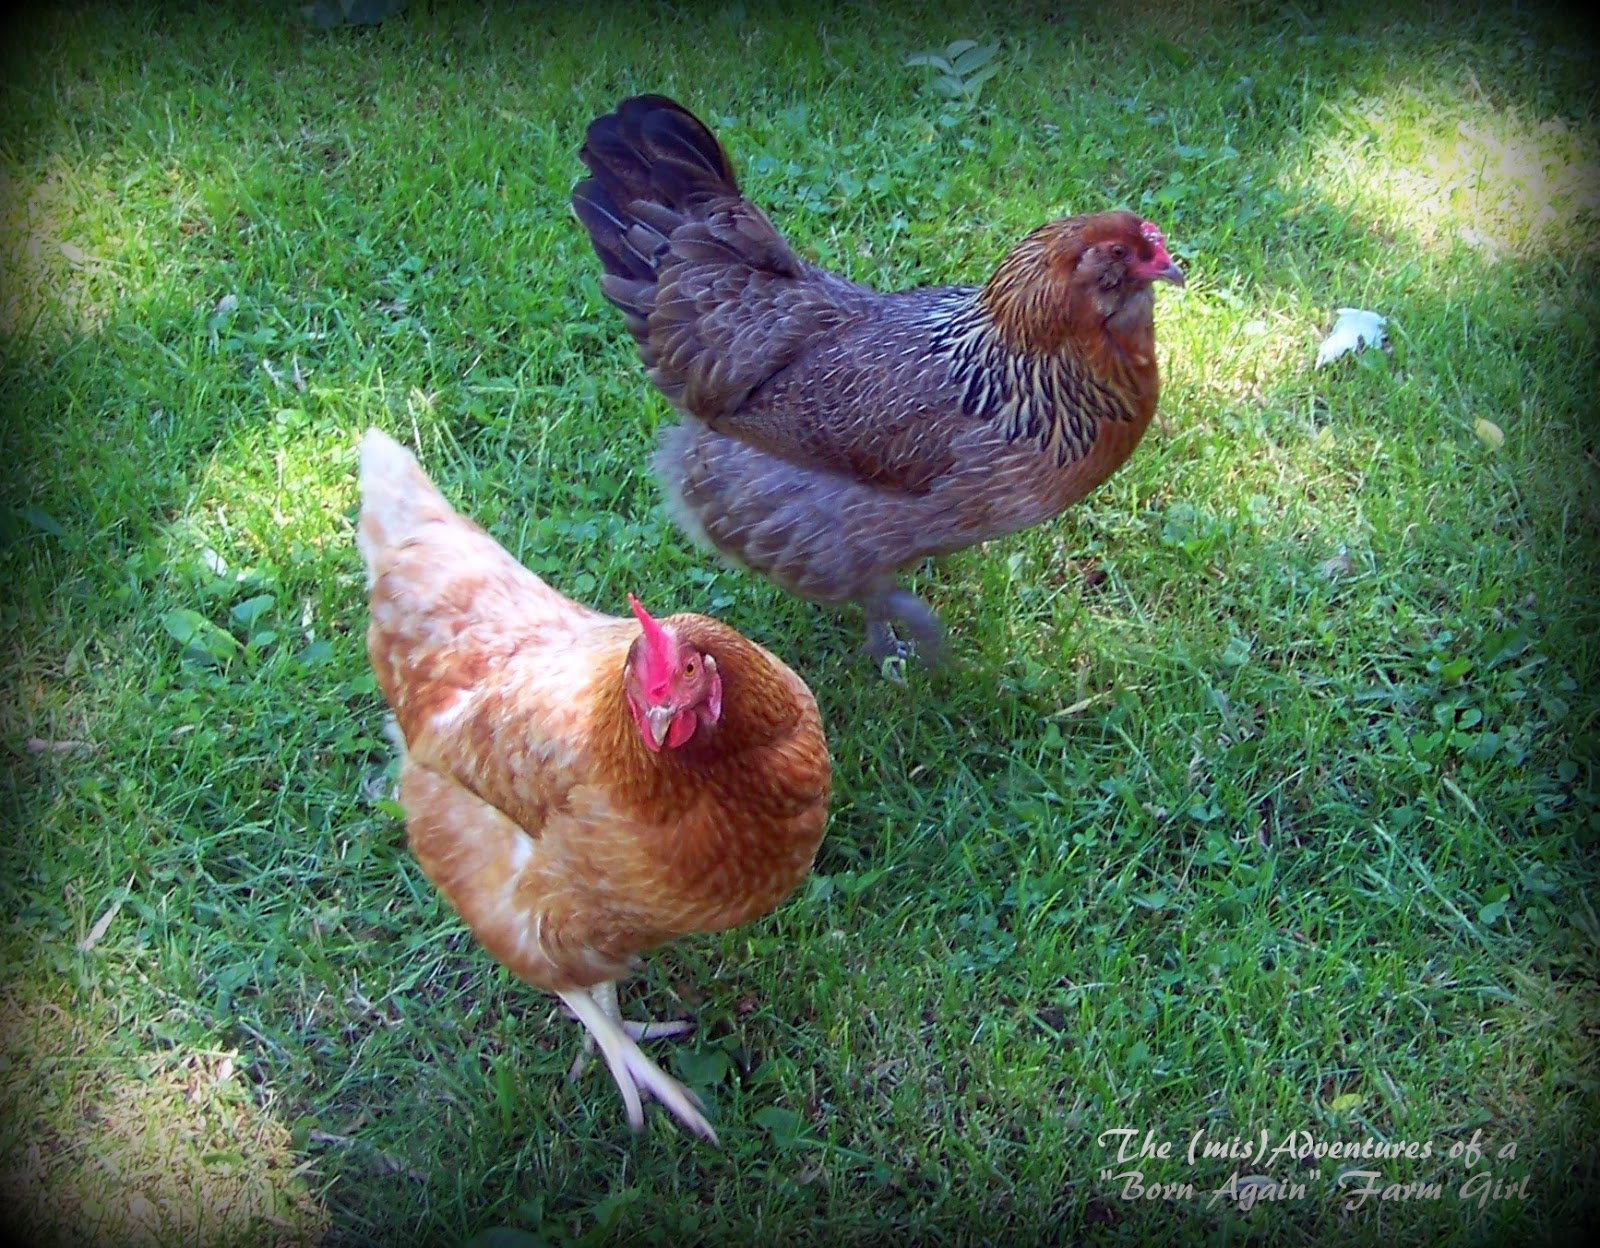 Backyard Chickens, do it legally and responsibly